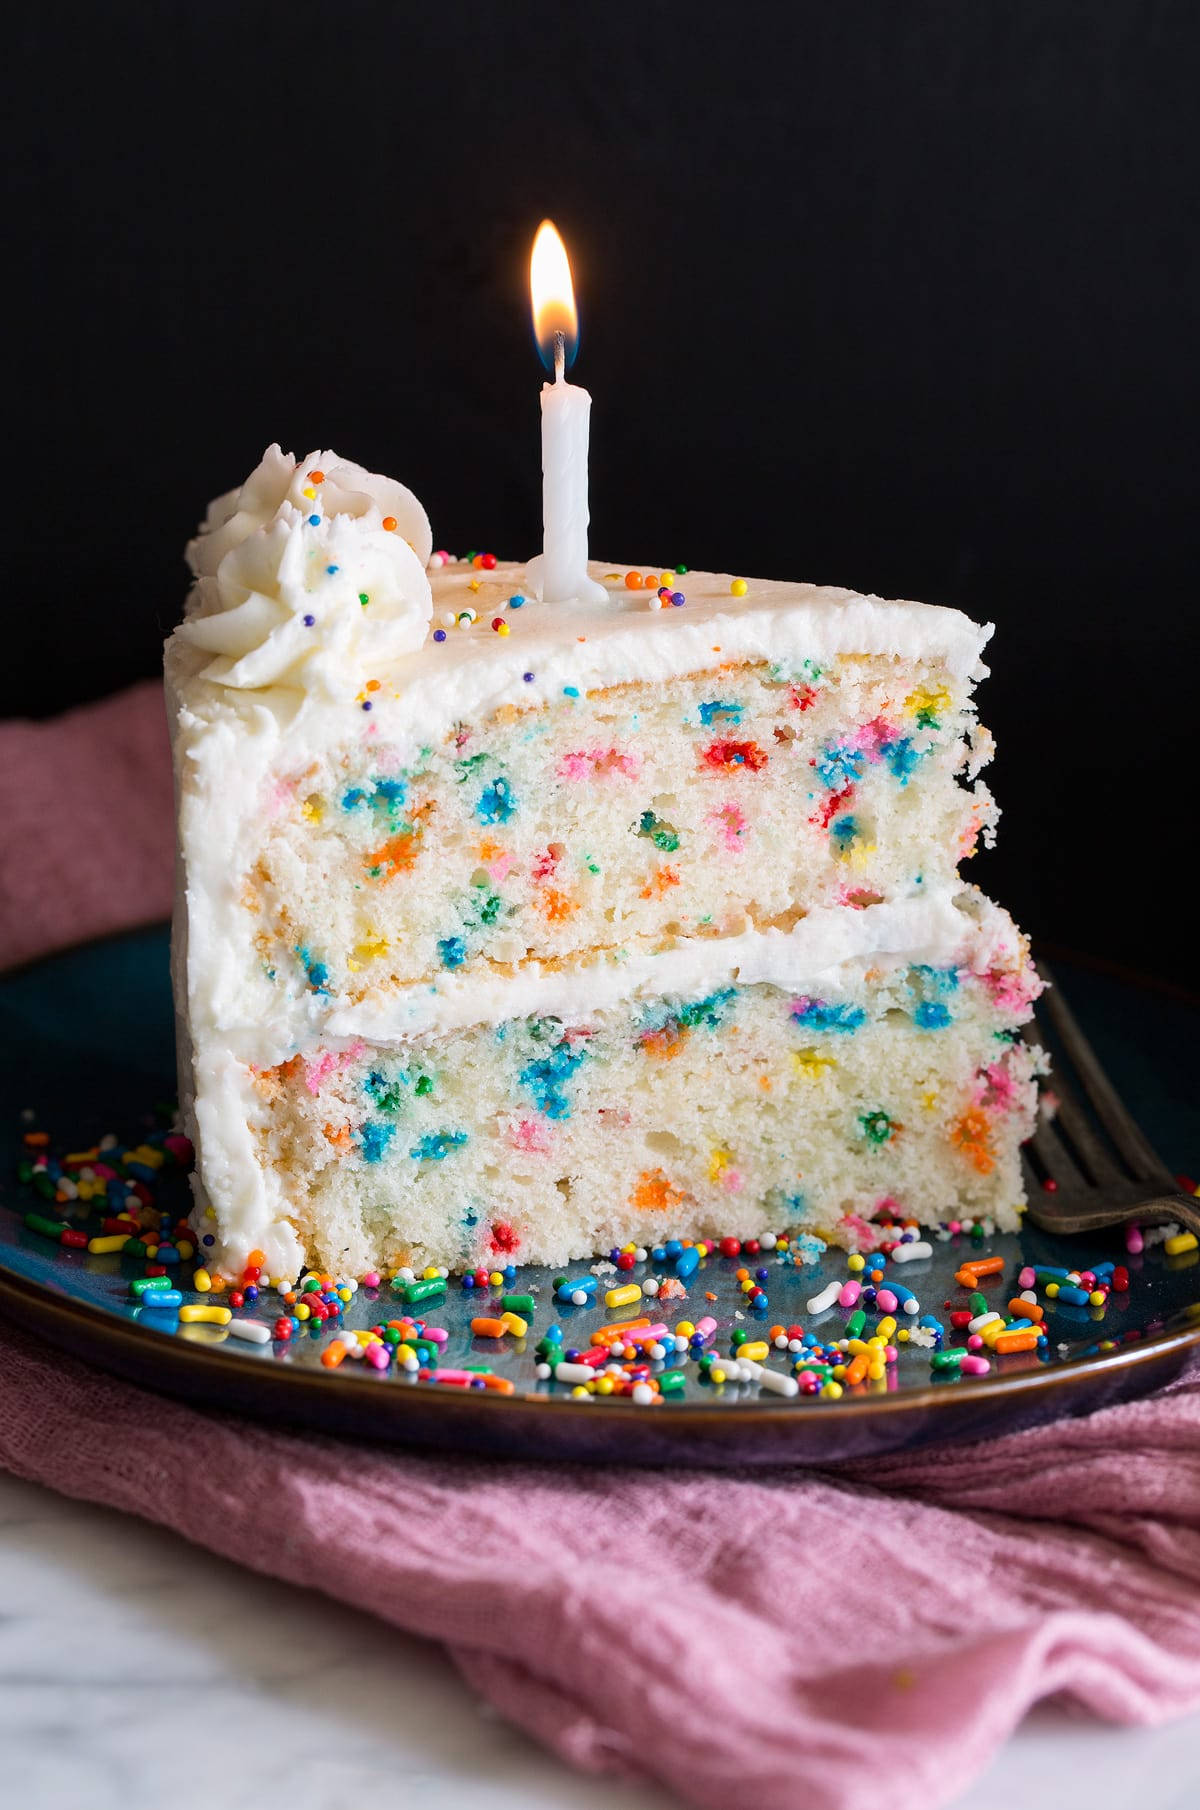 Slice of birthday cake with multi color dots in cake and topped with buttercream frosting and a birthday. candle.